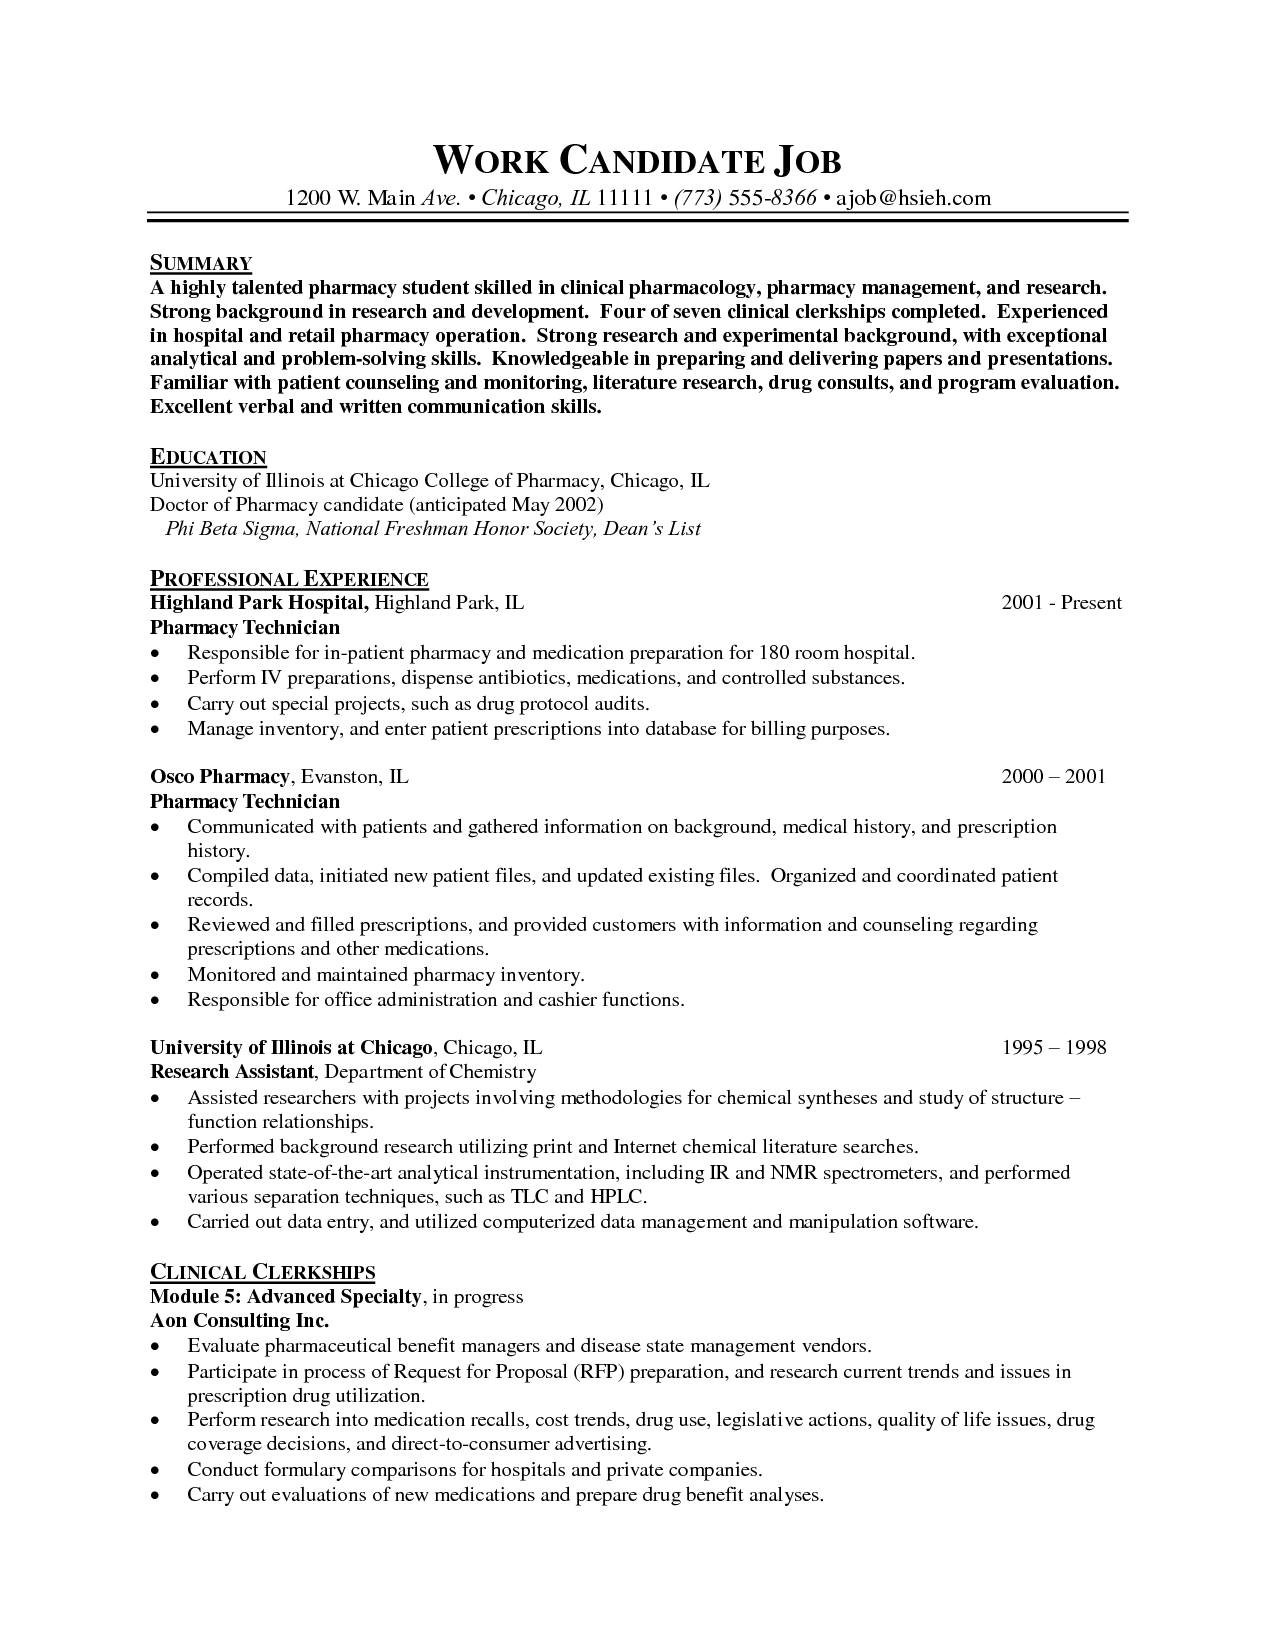 Pharmacist Resume Sample Professional Resume Cover Letter Sample  Get Instant Risk Free